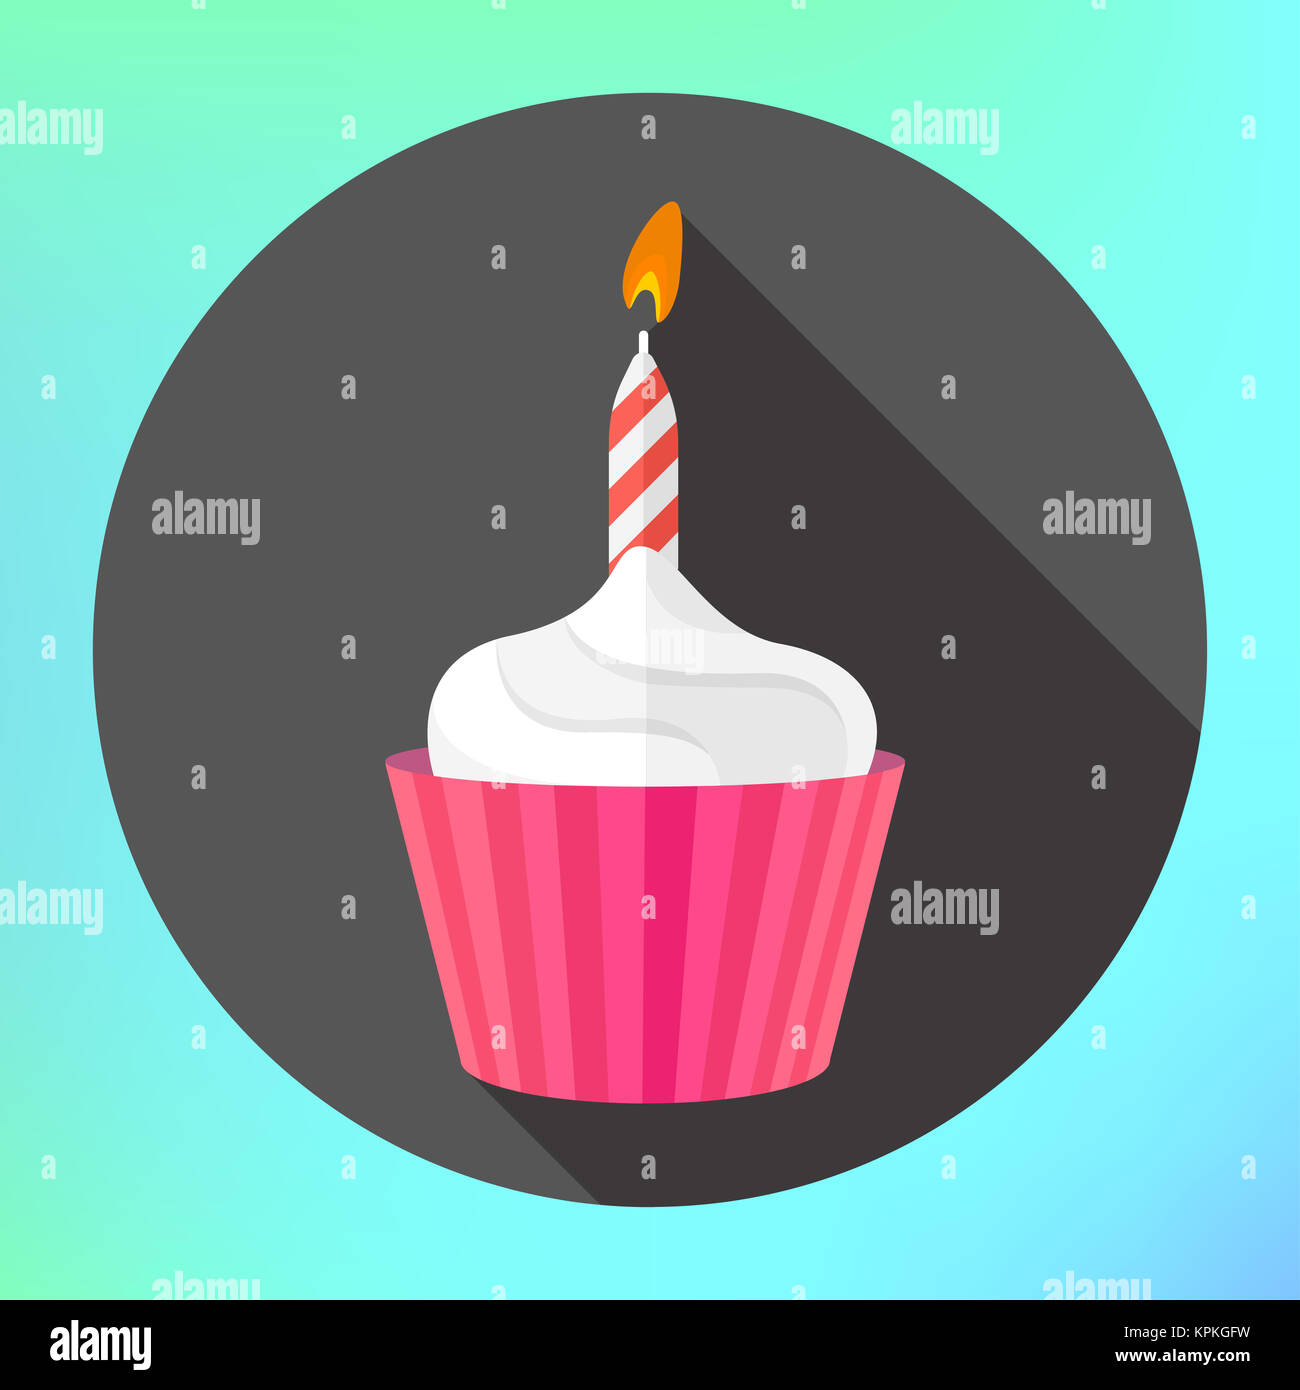 clipart cupcake burning candle flame - Stock Image